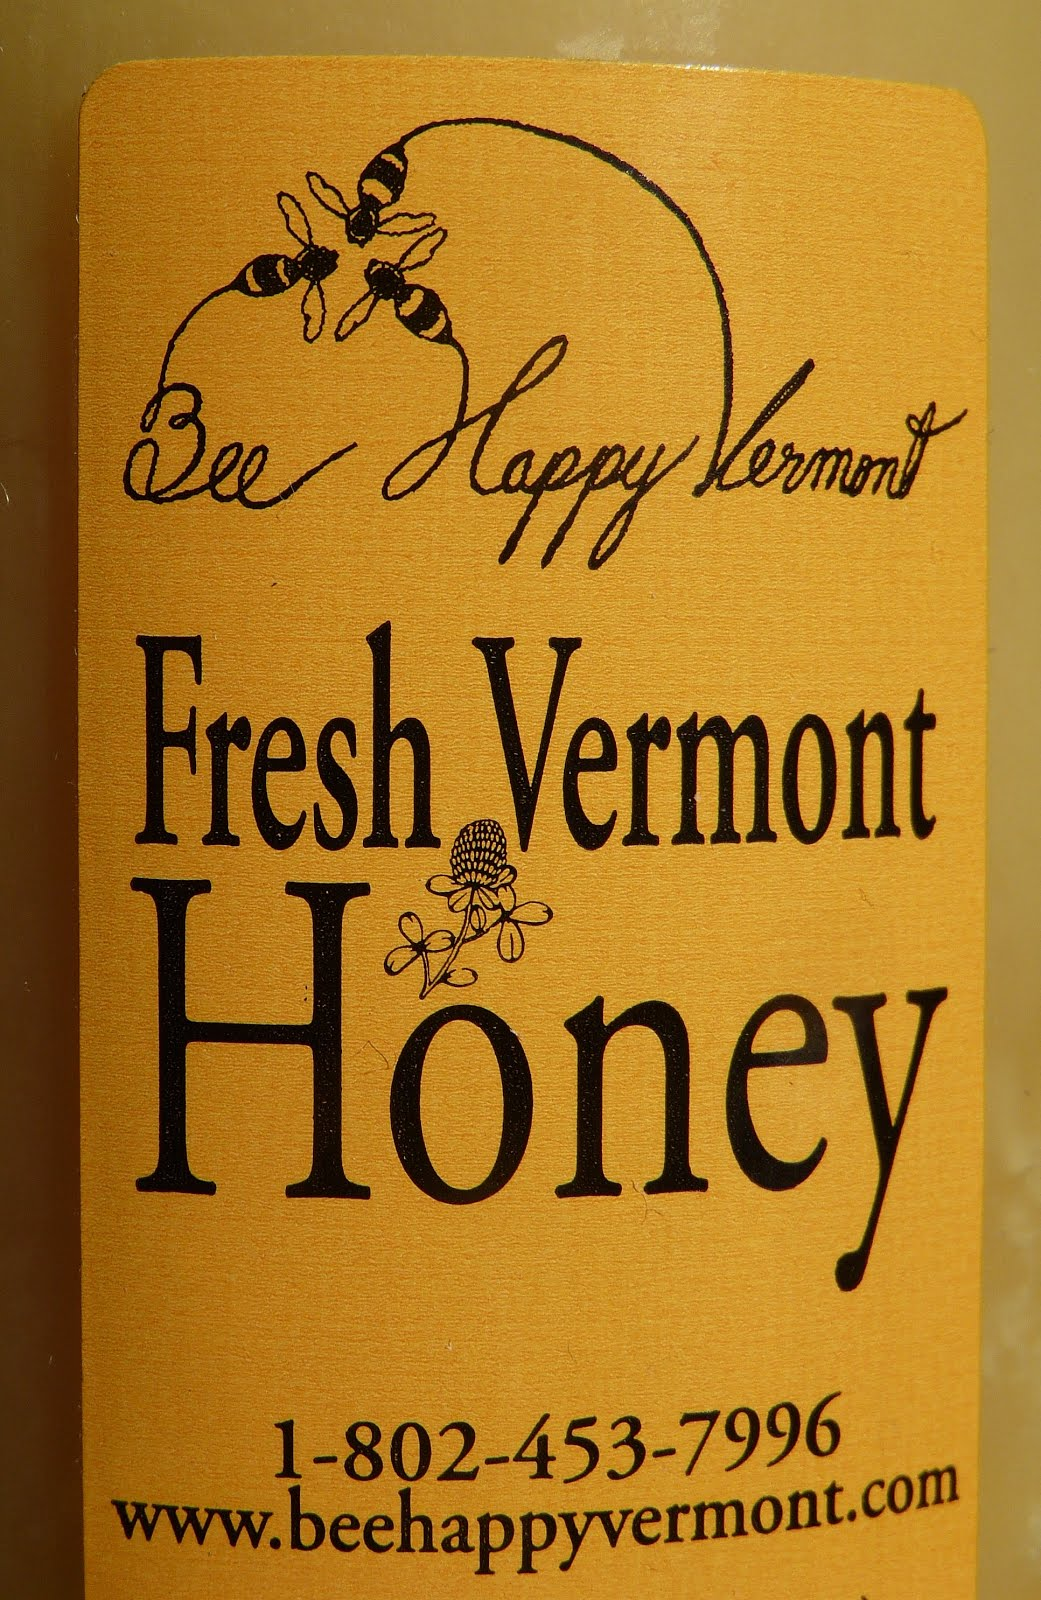 Bee Happy Vermont